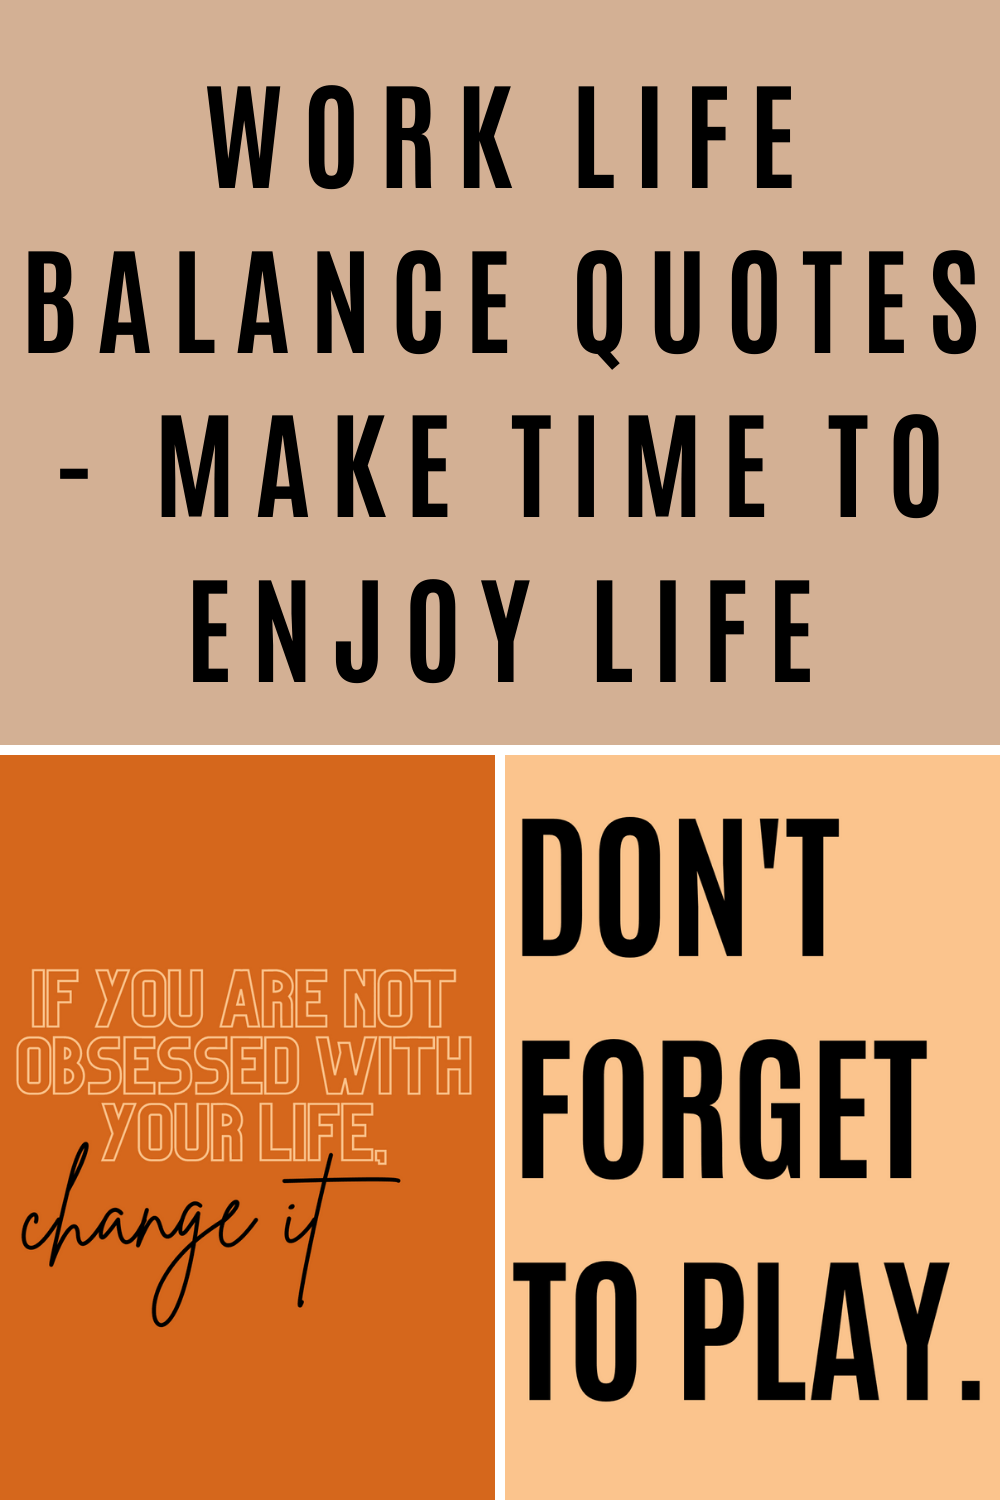 Balance Quotes Funny : balance, quotes, funny, Balance, Quotes, ({51+, Quotes}, Obsessive, Darling, Quote